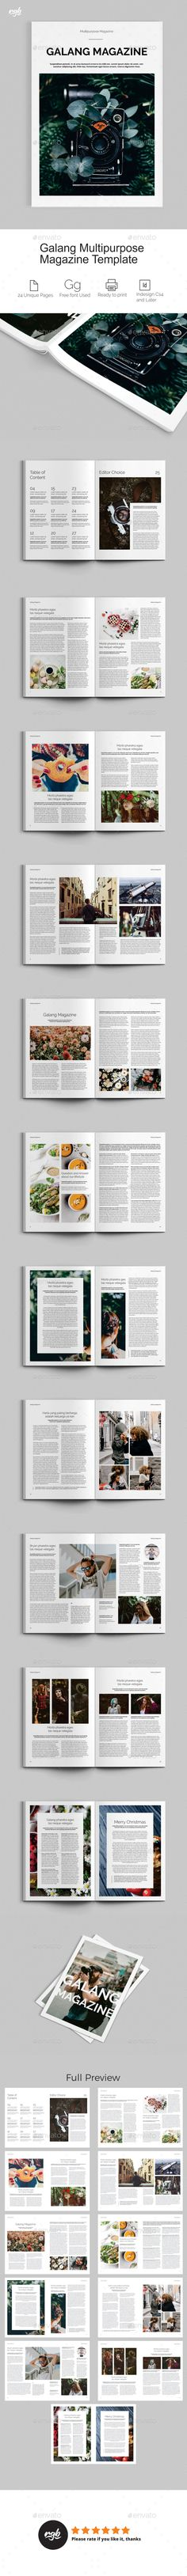 Galang Magazine Template InDesign INDD - 24 Unique Pages A4 and US Letter